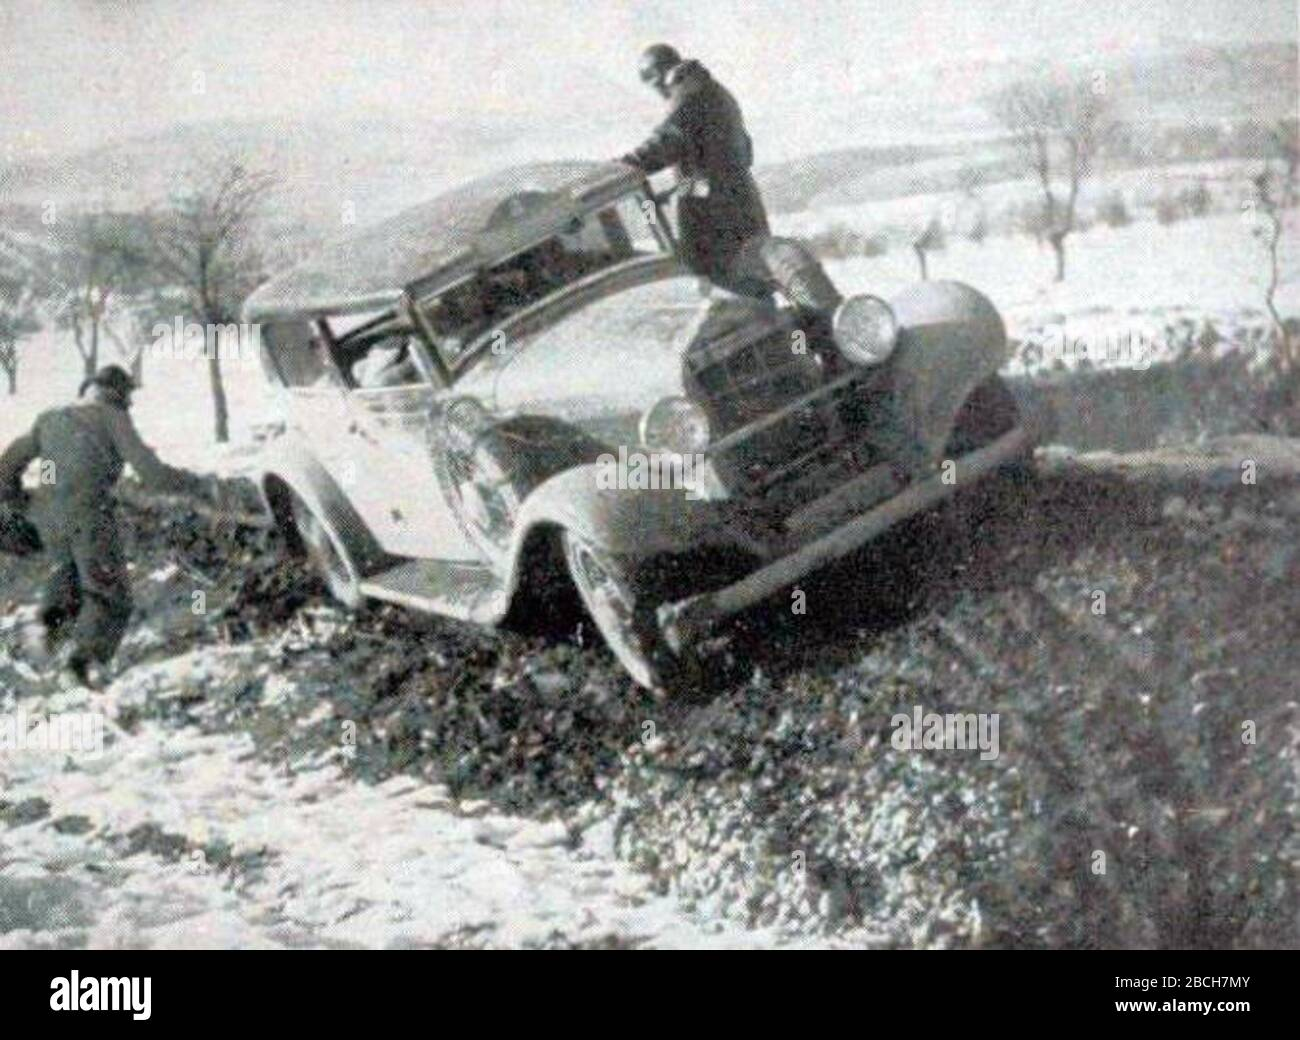 """""""Français: Rallye Monte Carlo 1934, la Hotchkiss de Gas et Trévoux.English: This seems like entry #4 in the 1934 Rallye Monte Carlo, which should have been a Hotchiss AM 80 S 3,485 ccm[1] but the car in this picture does NOT look quite similar (this one has a bumper, extra spare wheel, and not rounded radiator), so perhaps from a different year, or maybe it is not a 4 on the plaque mounted on the roof.; 4 November 2017; Omnia: revue pratique de locomotion, n°173, octobre 1934; Omnia; """" Stock Photo"""